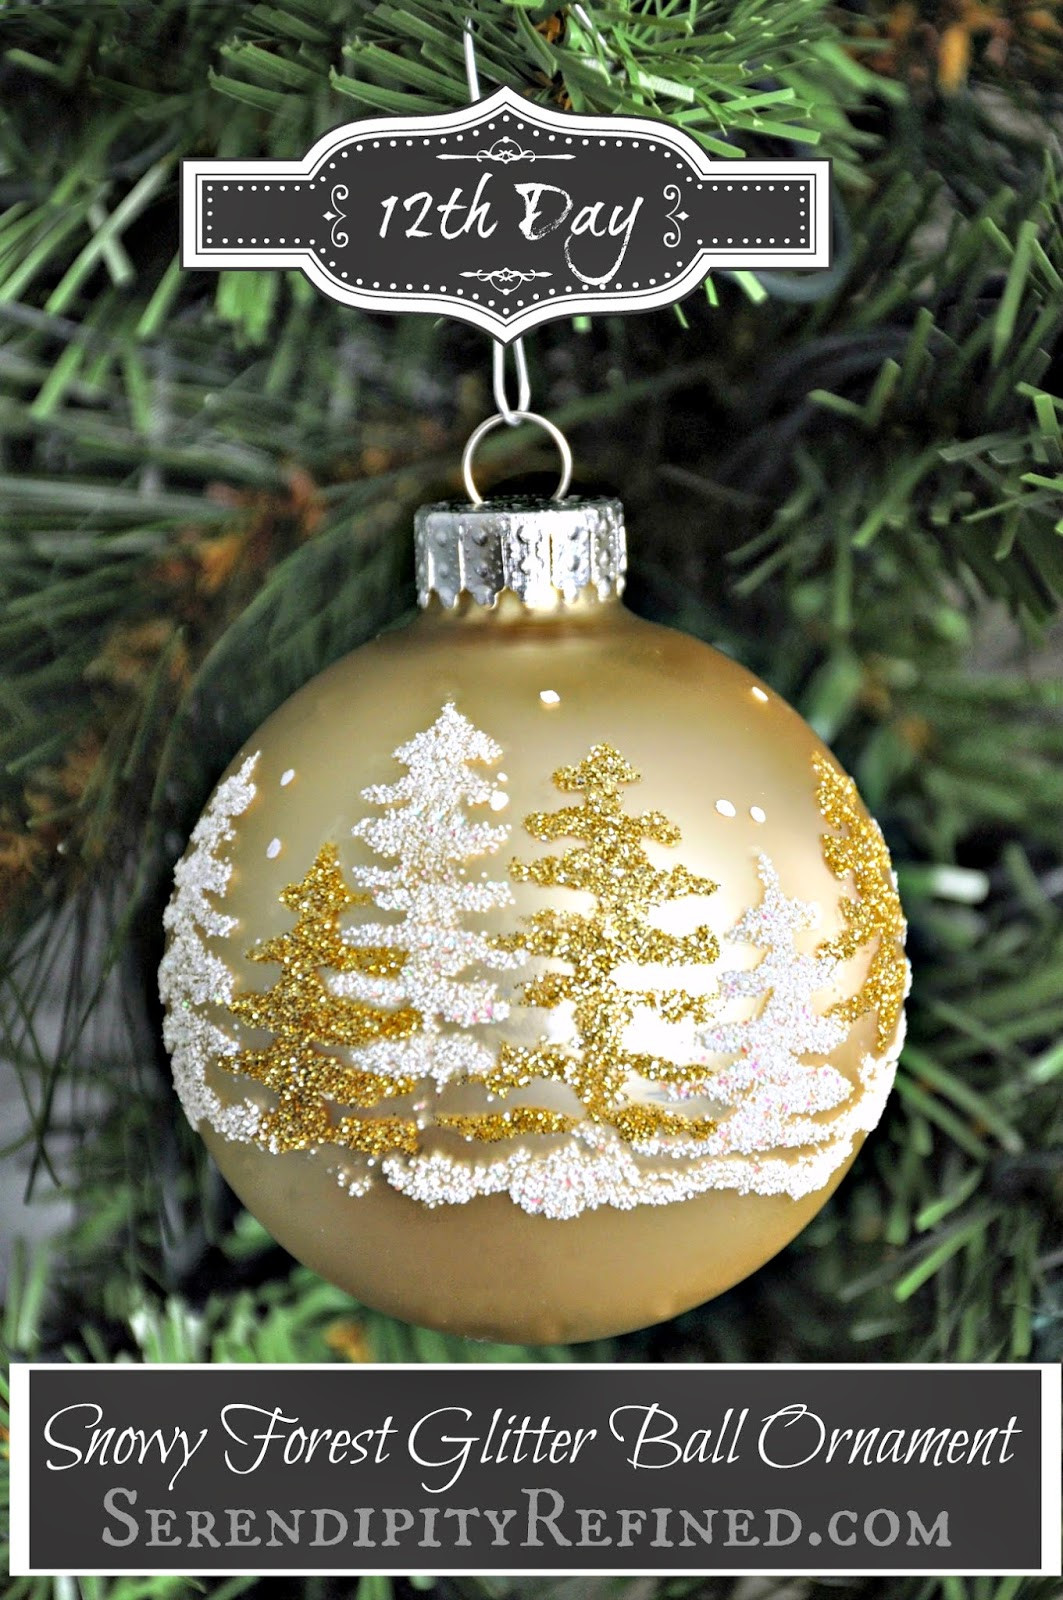 Christmas ornaments to Make Elegant Serendipity Refined Blog Snowy forest Glitter Ball Of Delightful 43 Images Christmas ornaments to Make